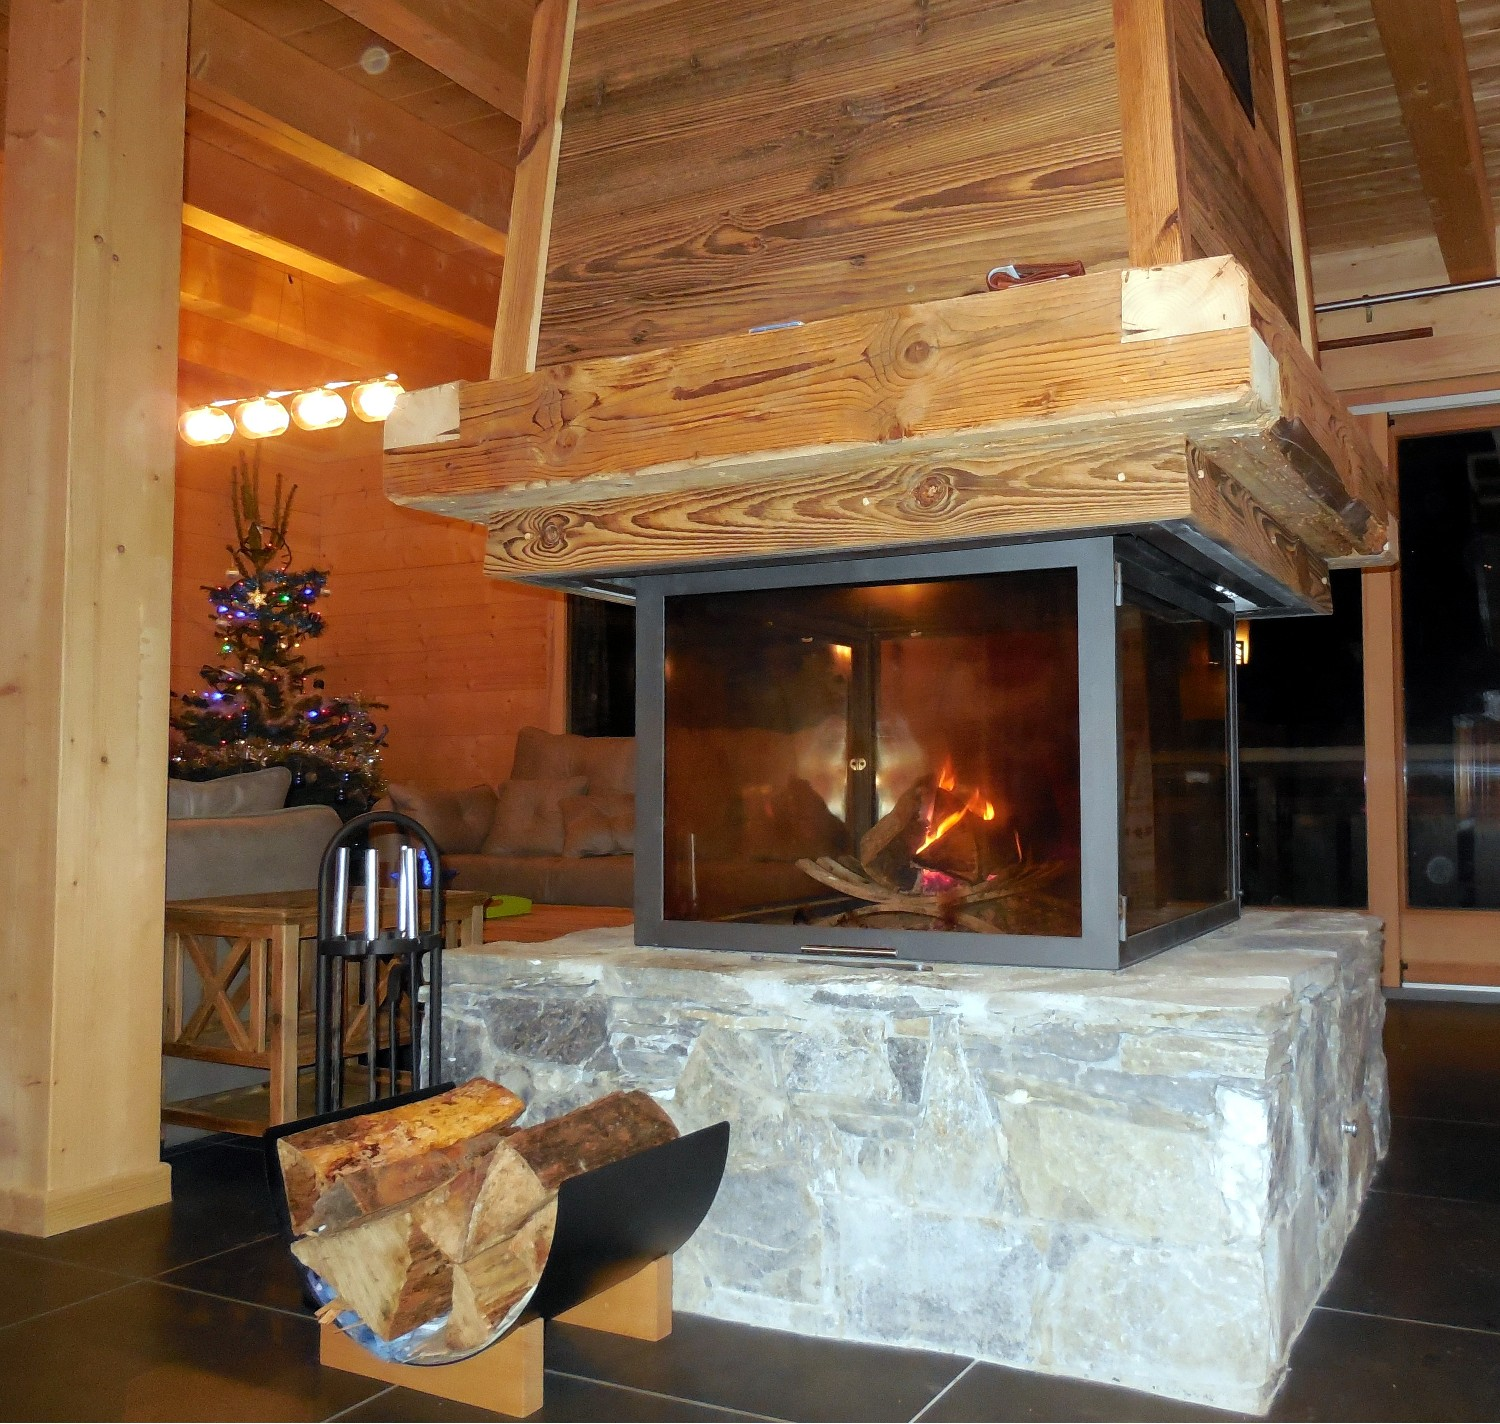 location de chalet appartement en montagne alpes. Black Bedroom Furniture Sets. Home Design Ideas